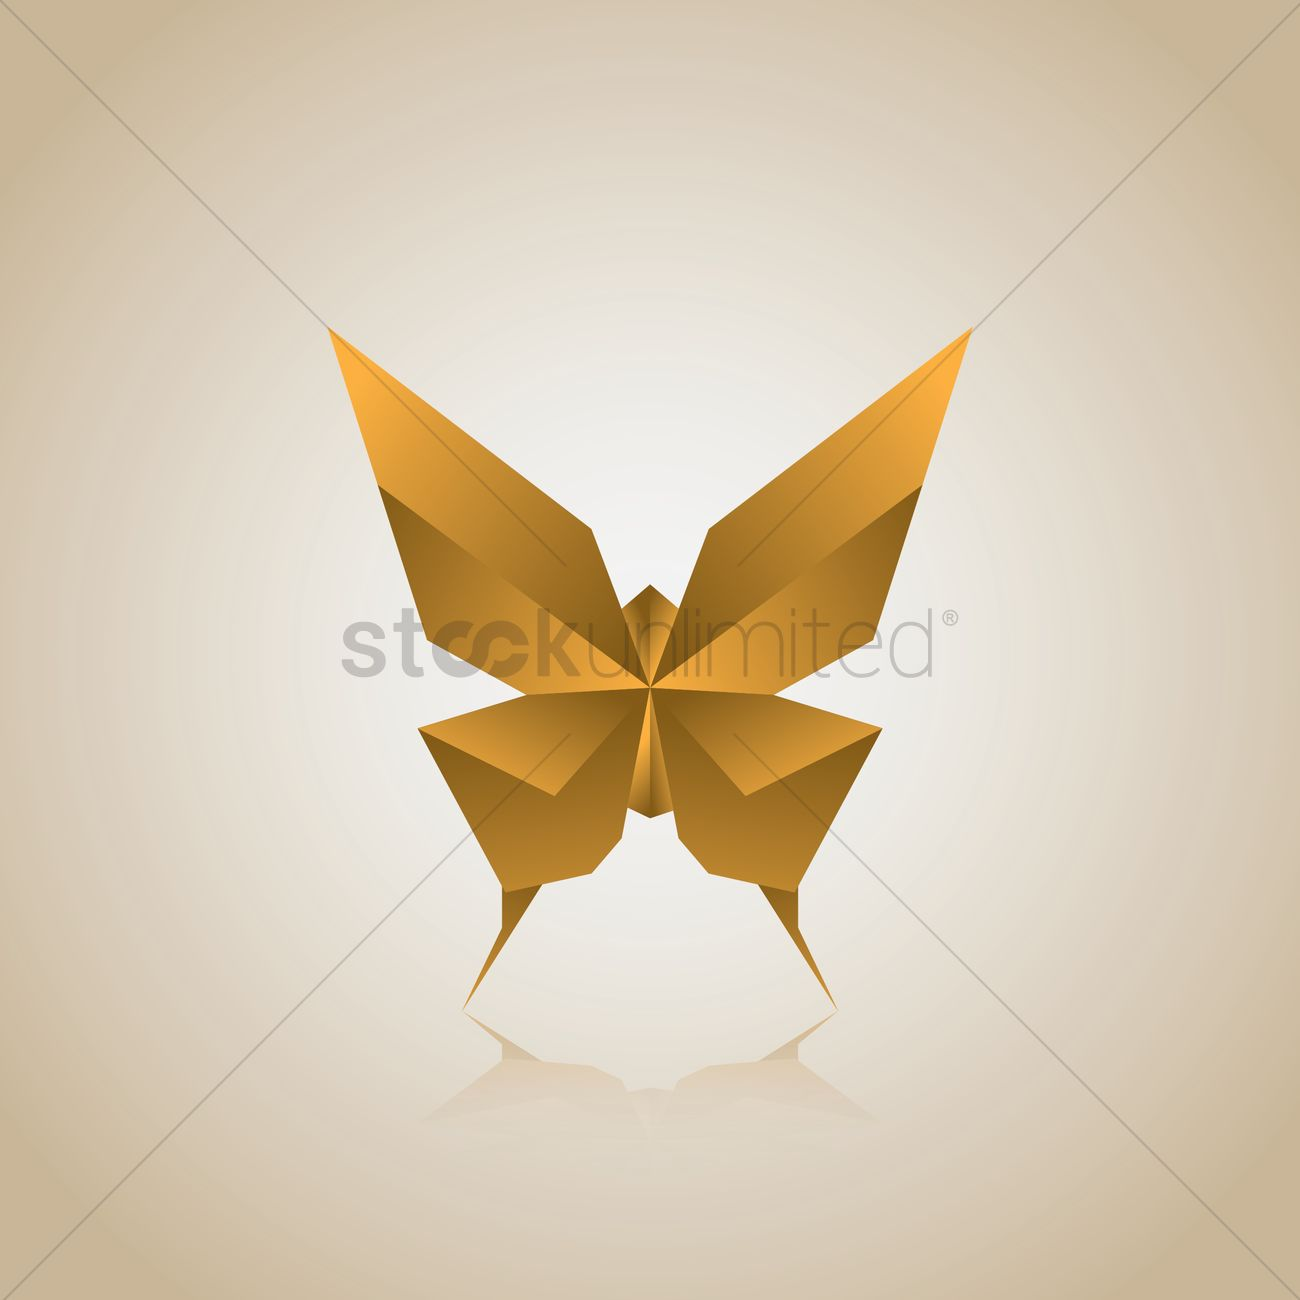 Free Origami Butterfly Vector Graphic